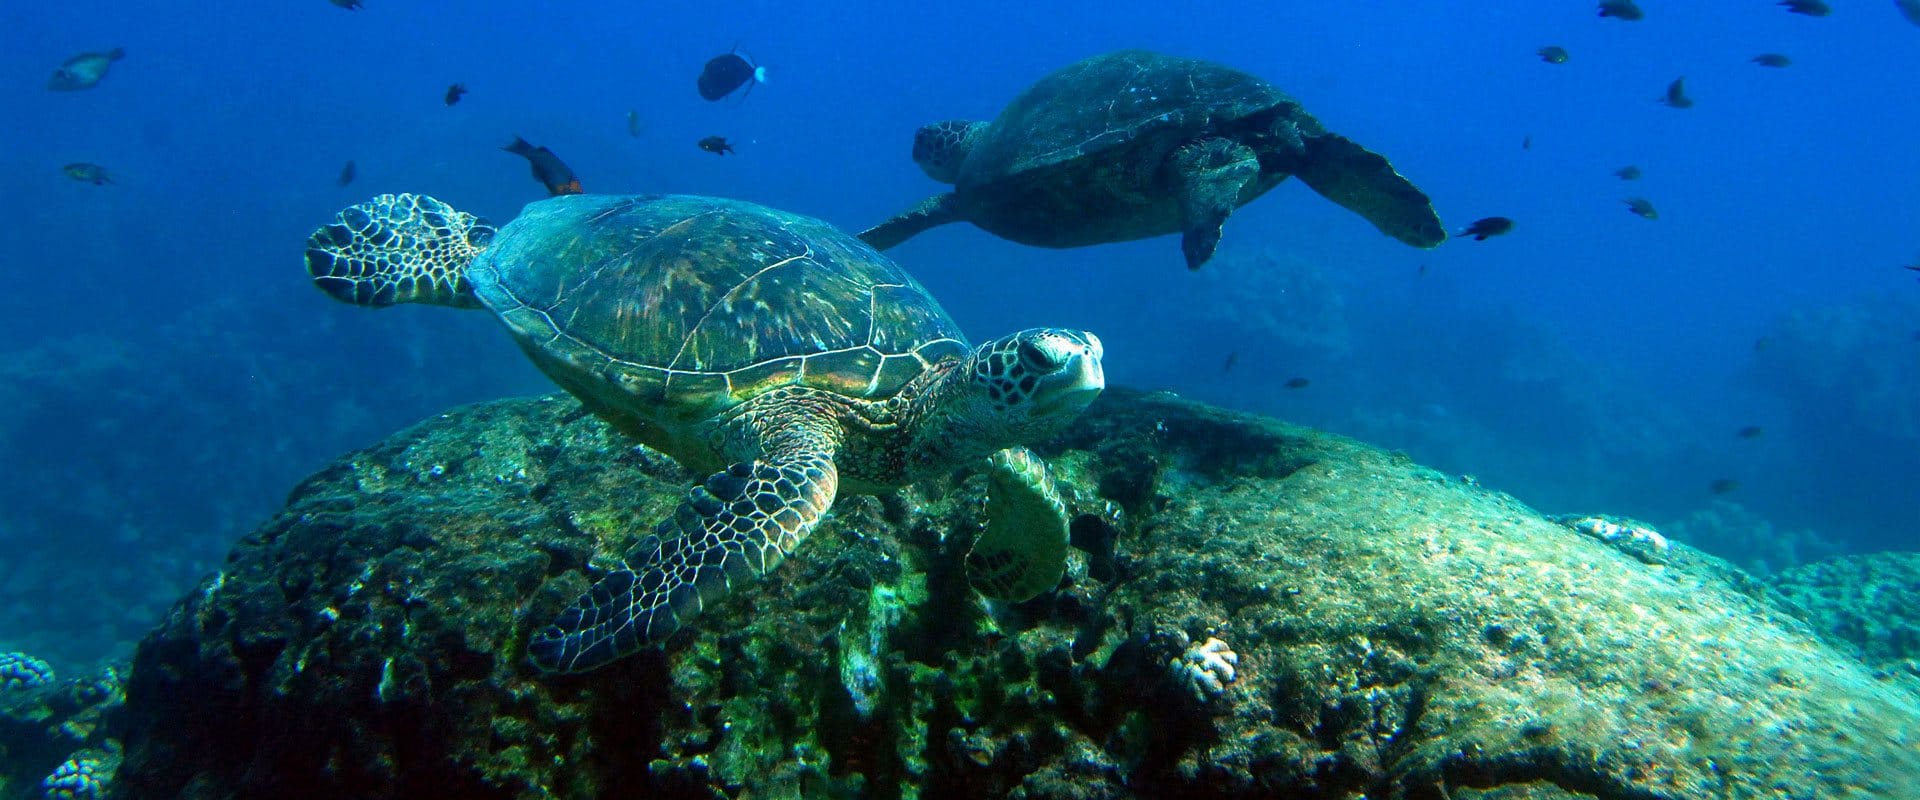 Beauty of sea turtles underwater